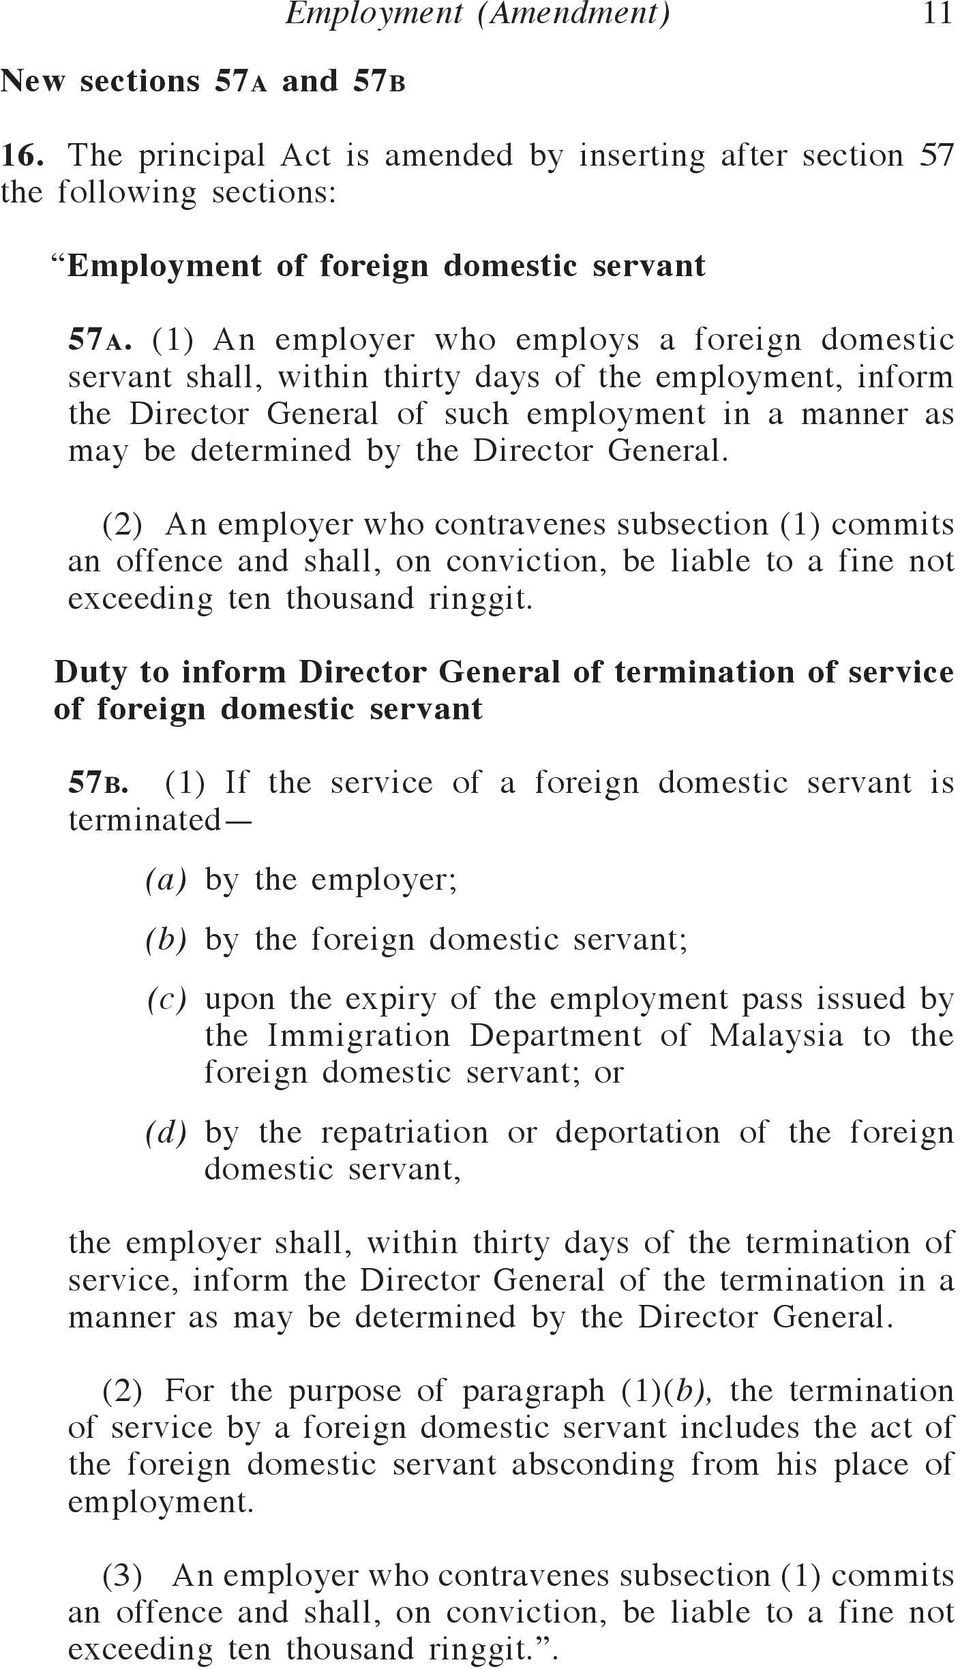 General. (2) An employer who contravenes subsection (1) commits an offence and shall, on conviction, be liable to a fine not exceeding ten thousand ringgit.